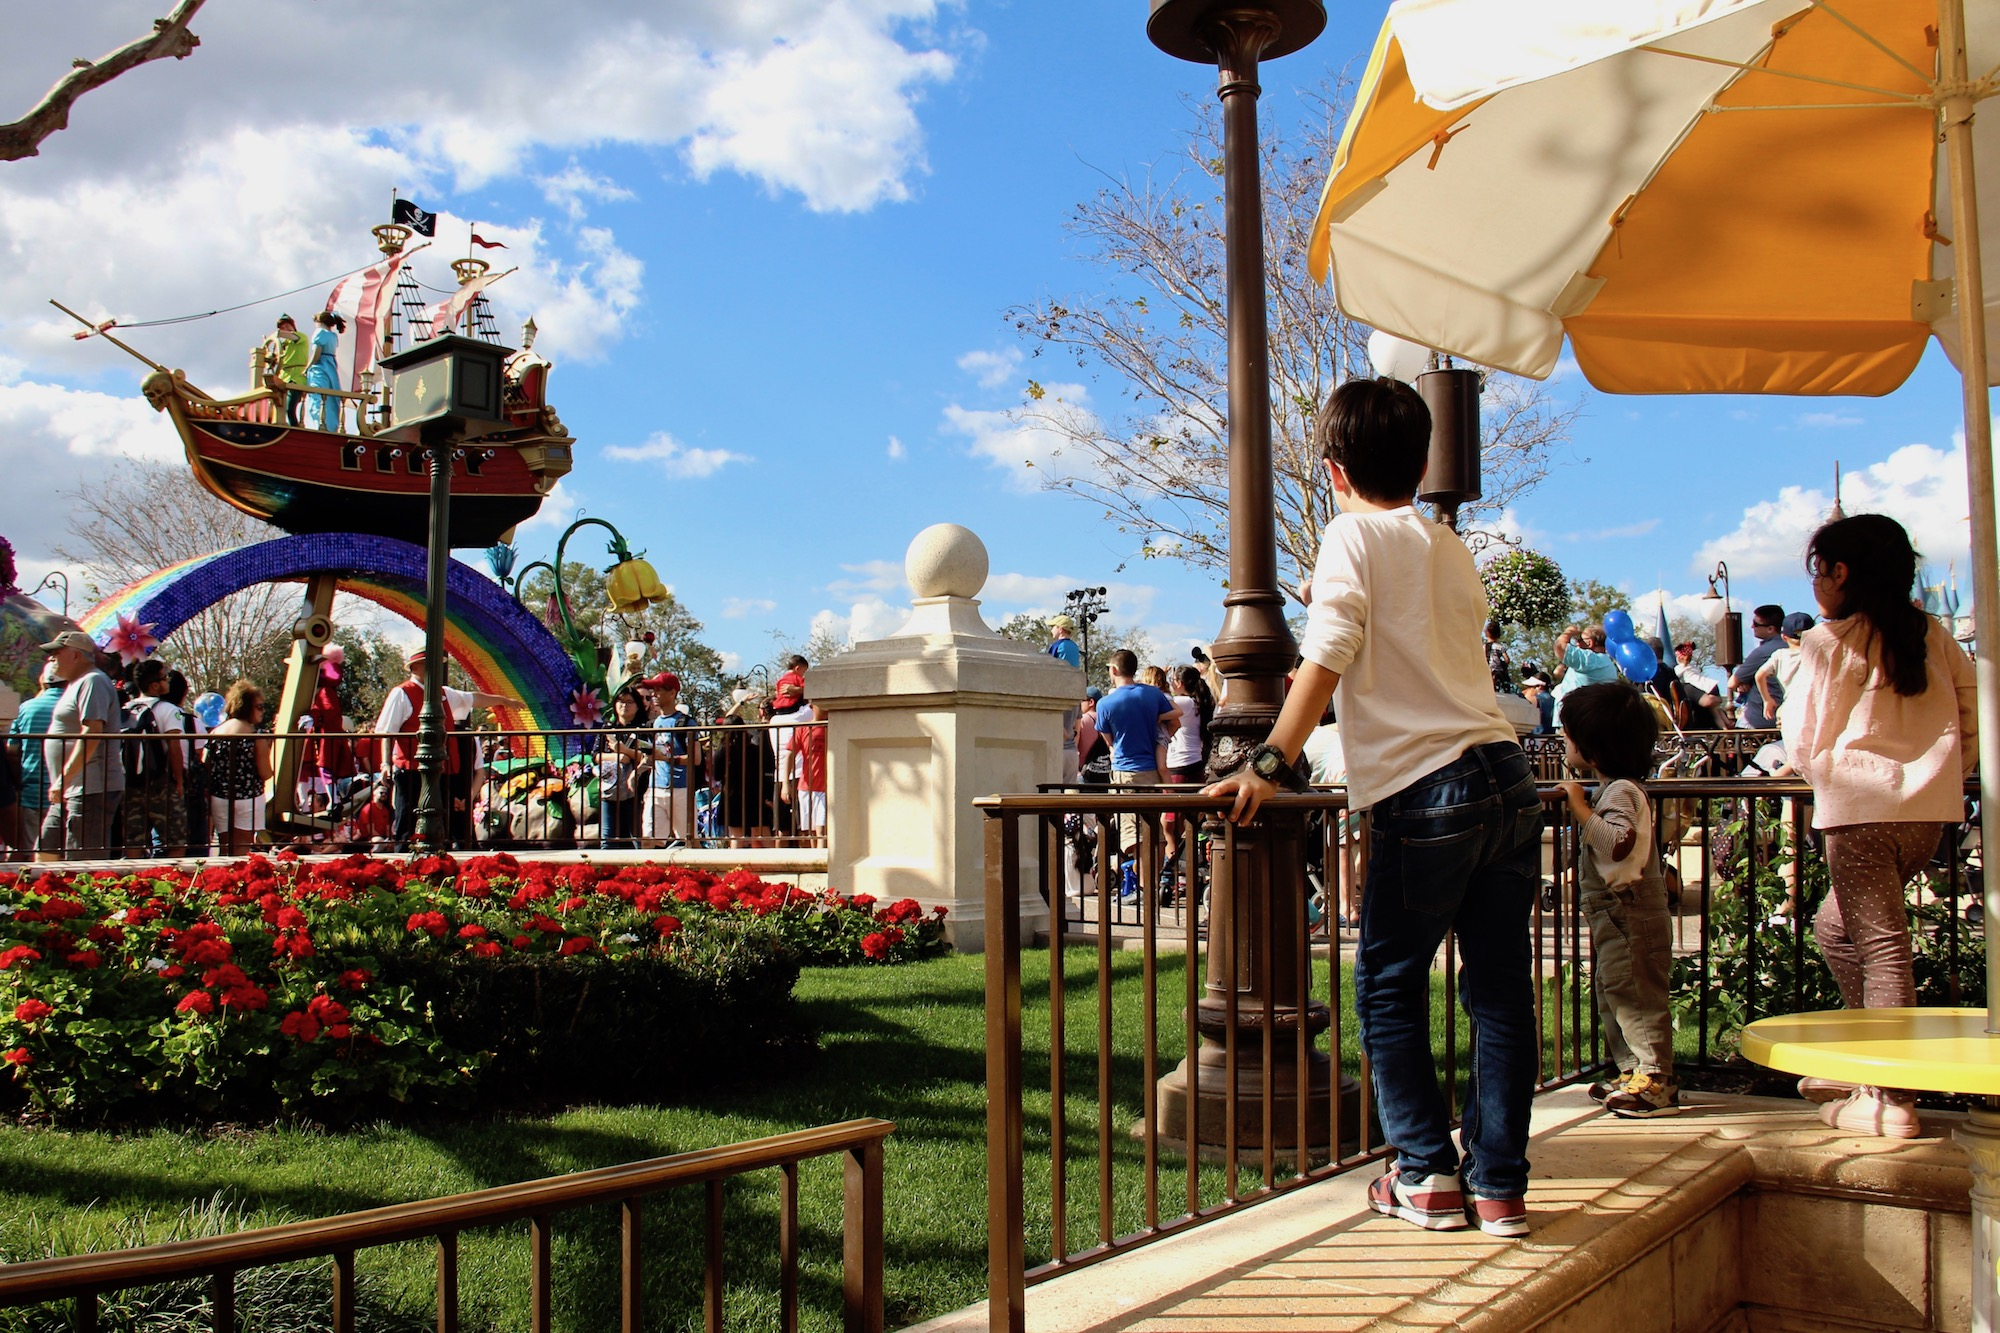 Todo sobre Magic Kingdom | criandoando.com